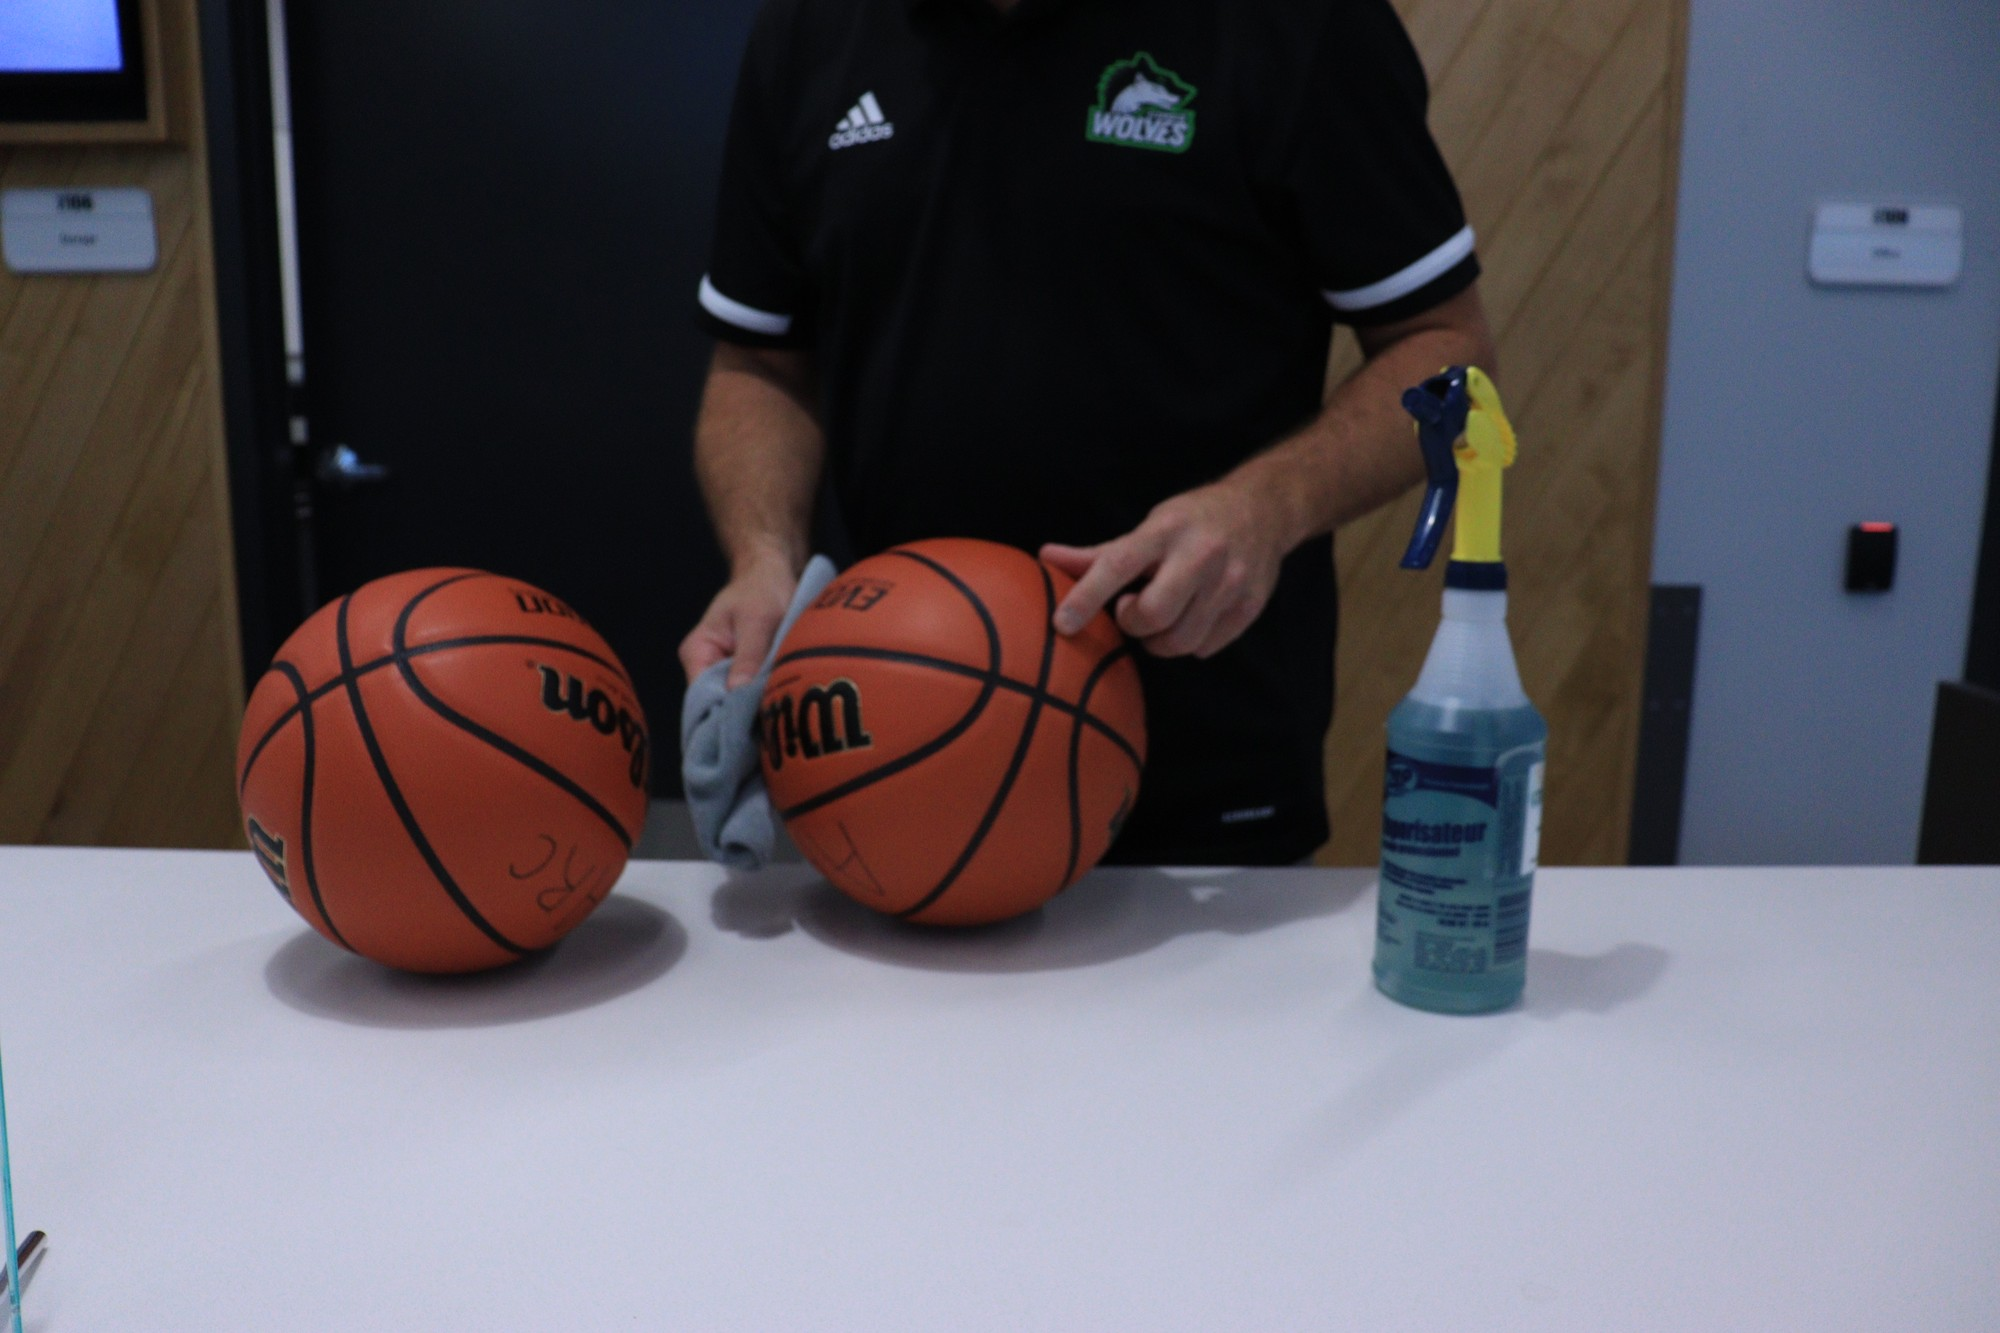 Athletics and recreation centre staff member, Mike Ciolfi sanitizing the basketballs between each use to ensure COVID-19 protocols are being followed.